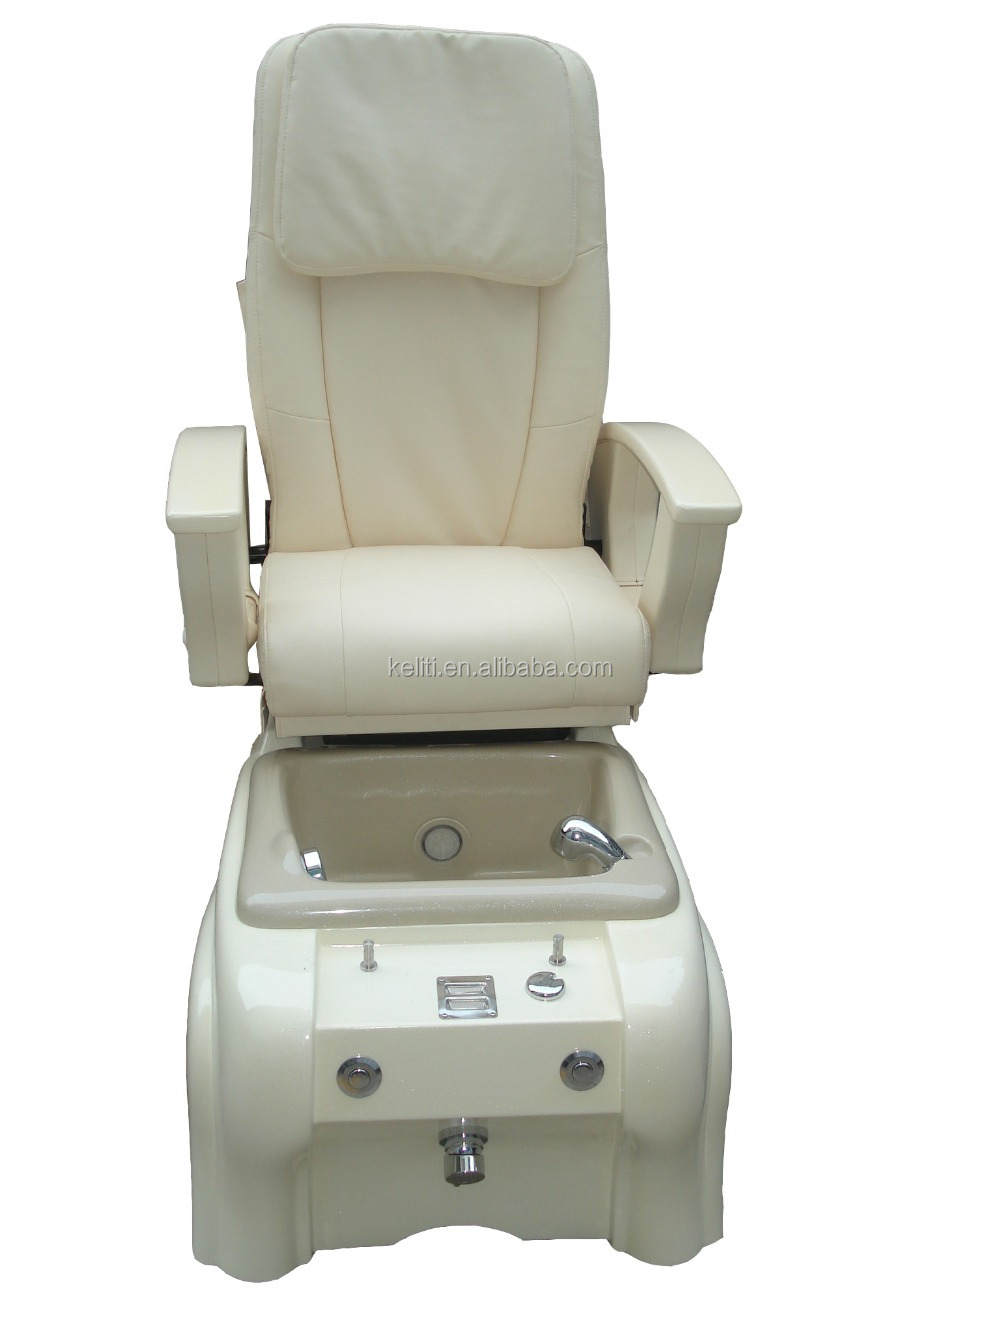 Used Pedicure Chair Alibaba >> 2016 Used Spa Pedicure Chair White Leather Chair Cover Foot Massage Pedicure Chair Similar To T4 Style View Used Spa Pedicure Chair Colity Product